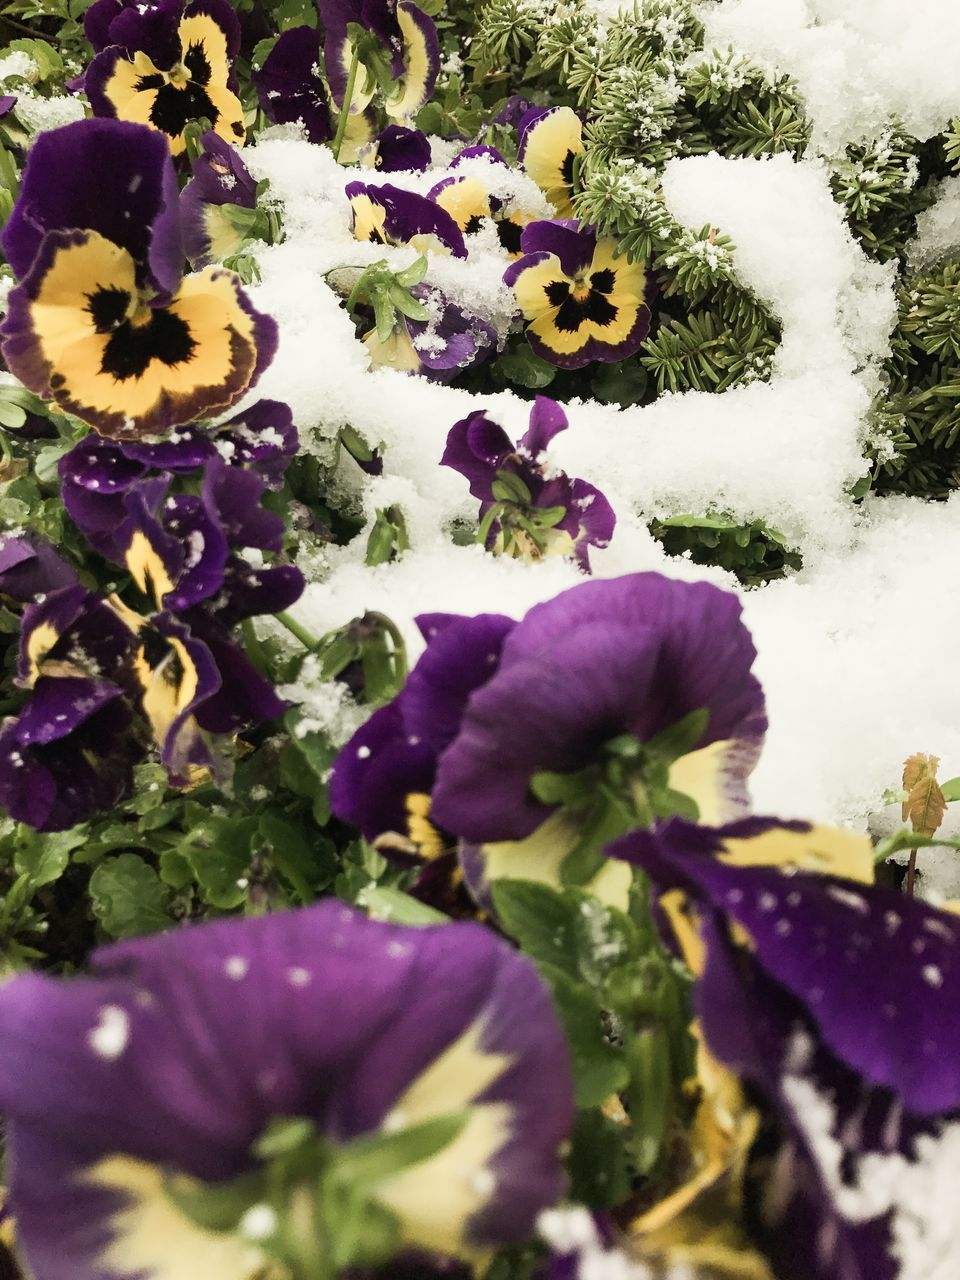 flower, purple, nature, beauty in nature, fragility, growth, petal, plant, freshness, no people, flower head, day, outdoors, pansy, blooming, close-up